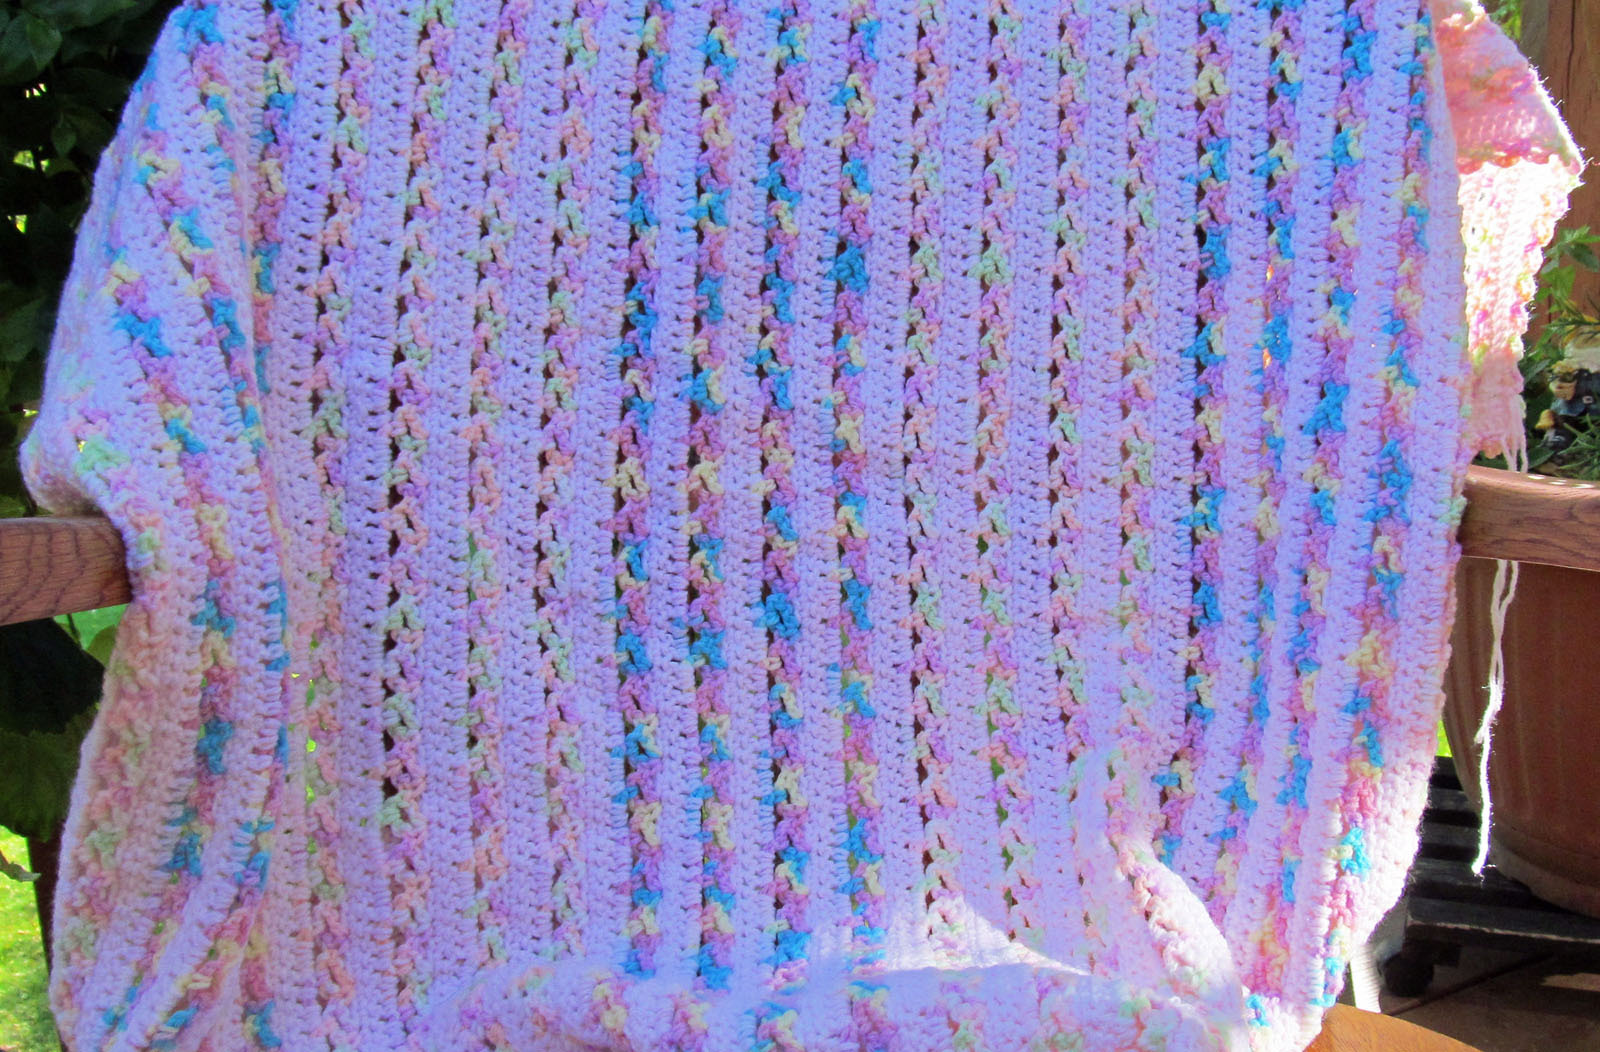 Crochet Striped Baby Blanket, Pink with Blue Accents - Handmade